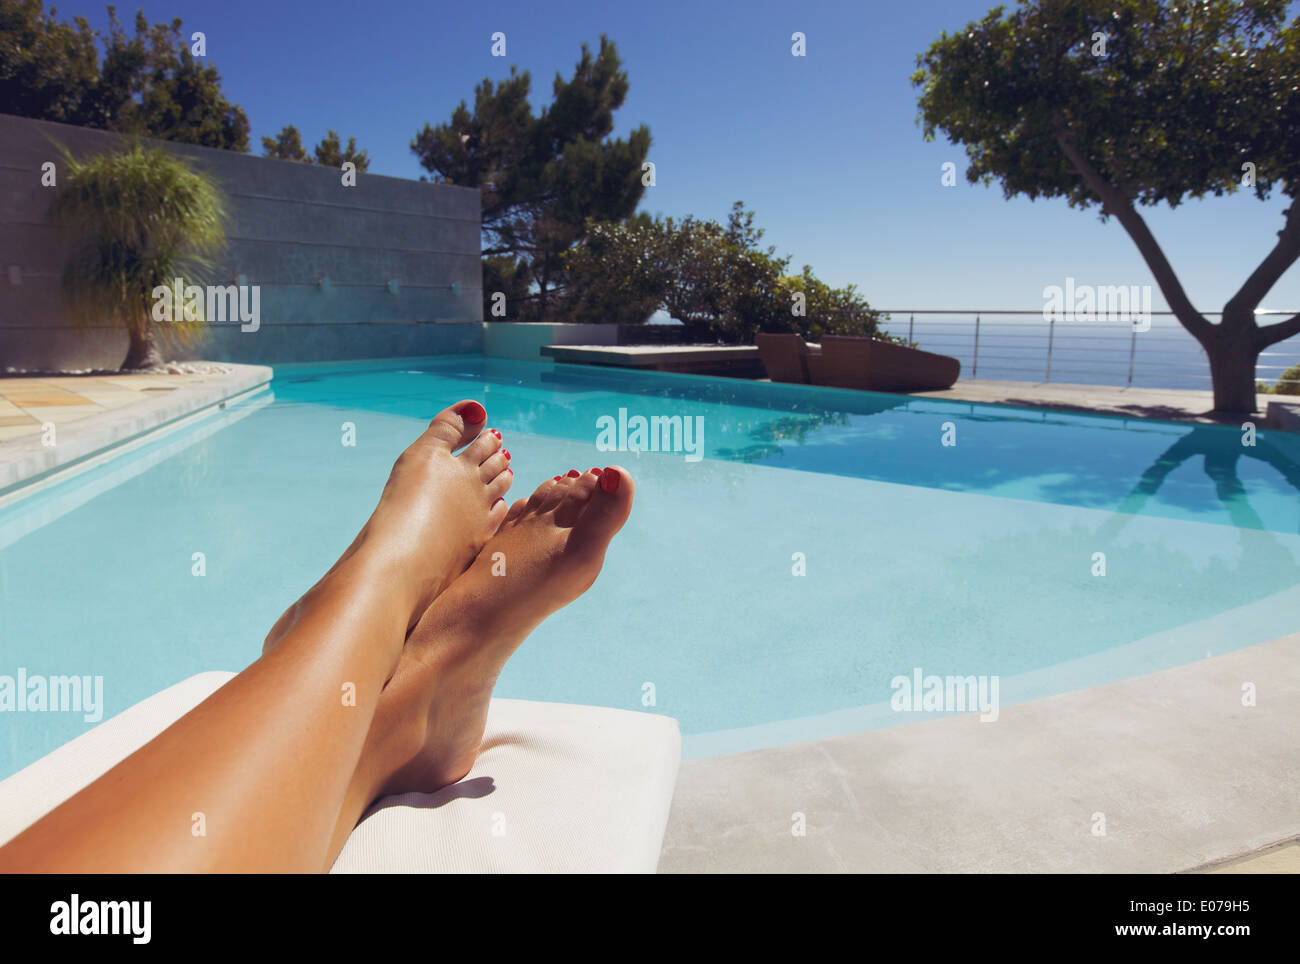 Bare feet of young lady lying on deck chair sunbathing by the swimming pool. - Stock Image